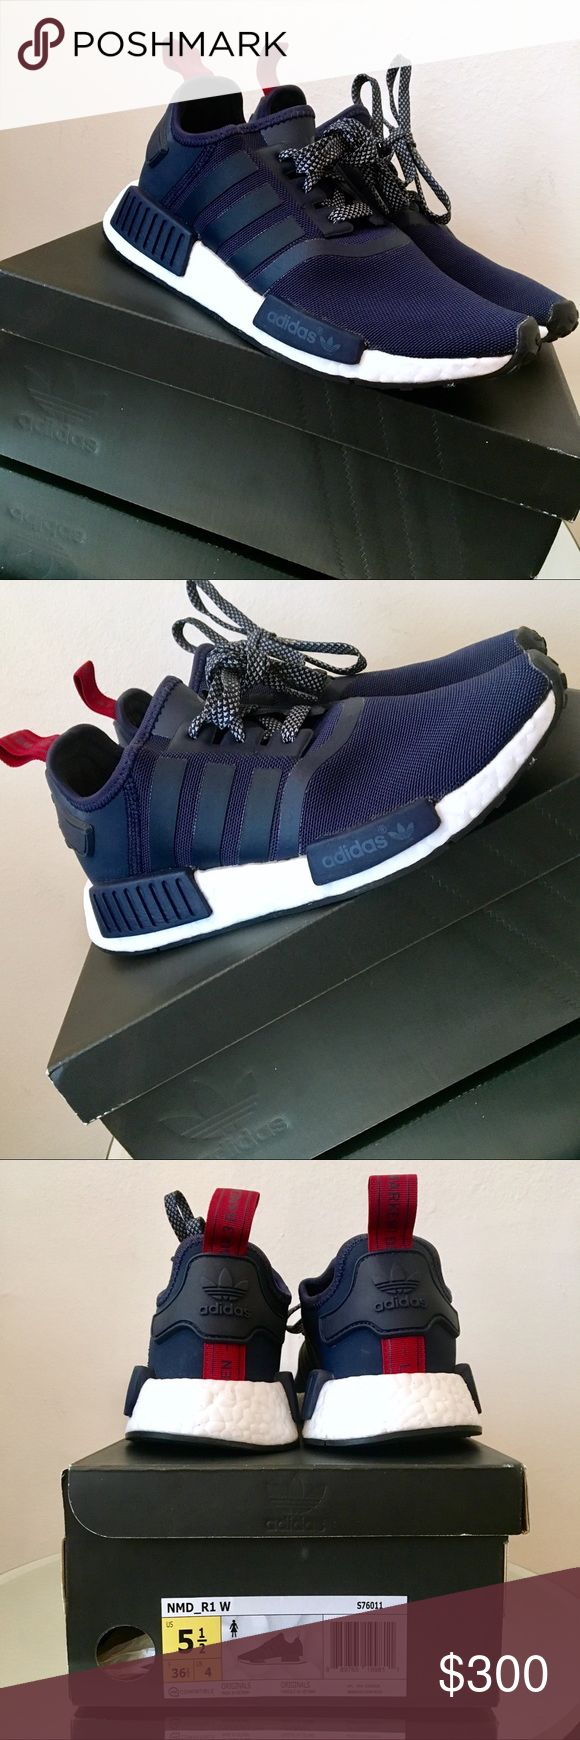 Adidas NMD_R1 W S76011 Navy/Burgundy Dead Stock Brand new Adidas NMD_R1 W S76011 Navy/Burgundy/White 2016 Dead Stock sold out size in original box. My husband thought it would be a good idea to get matching athletic shoes and I know these are super on tre